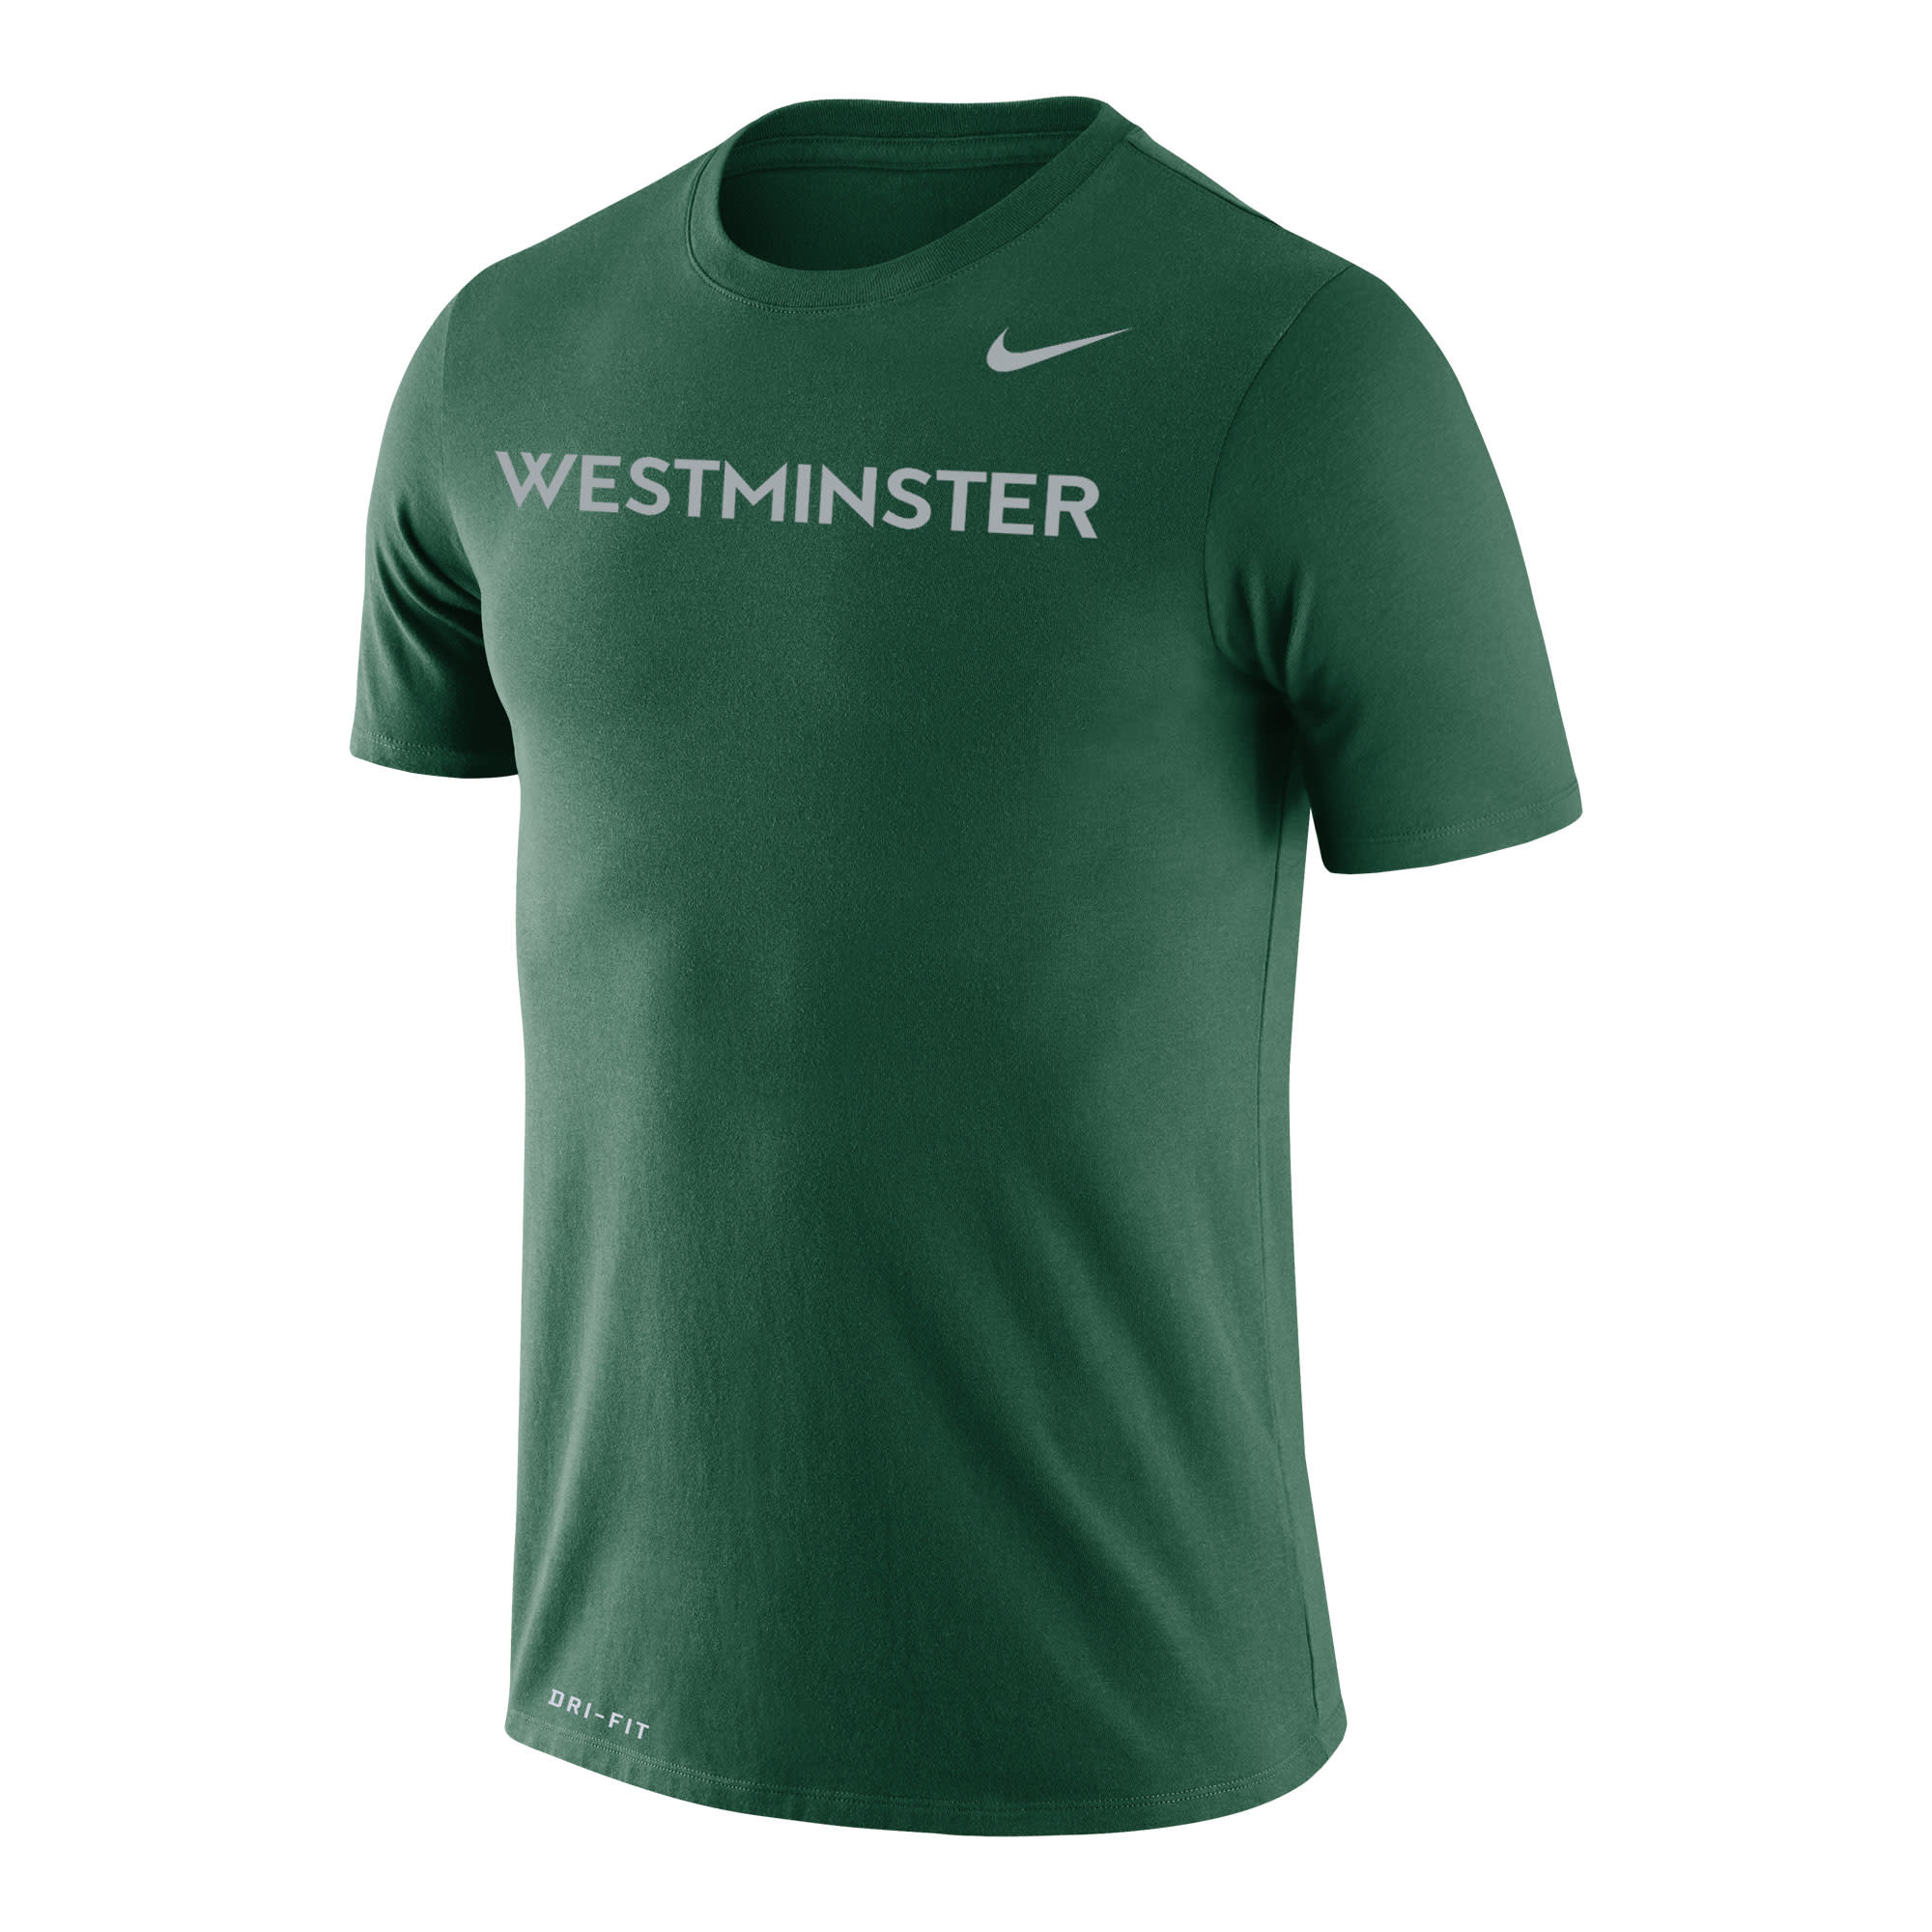 T: Men's Dri-Fit Cotton SS w/silver Westminster